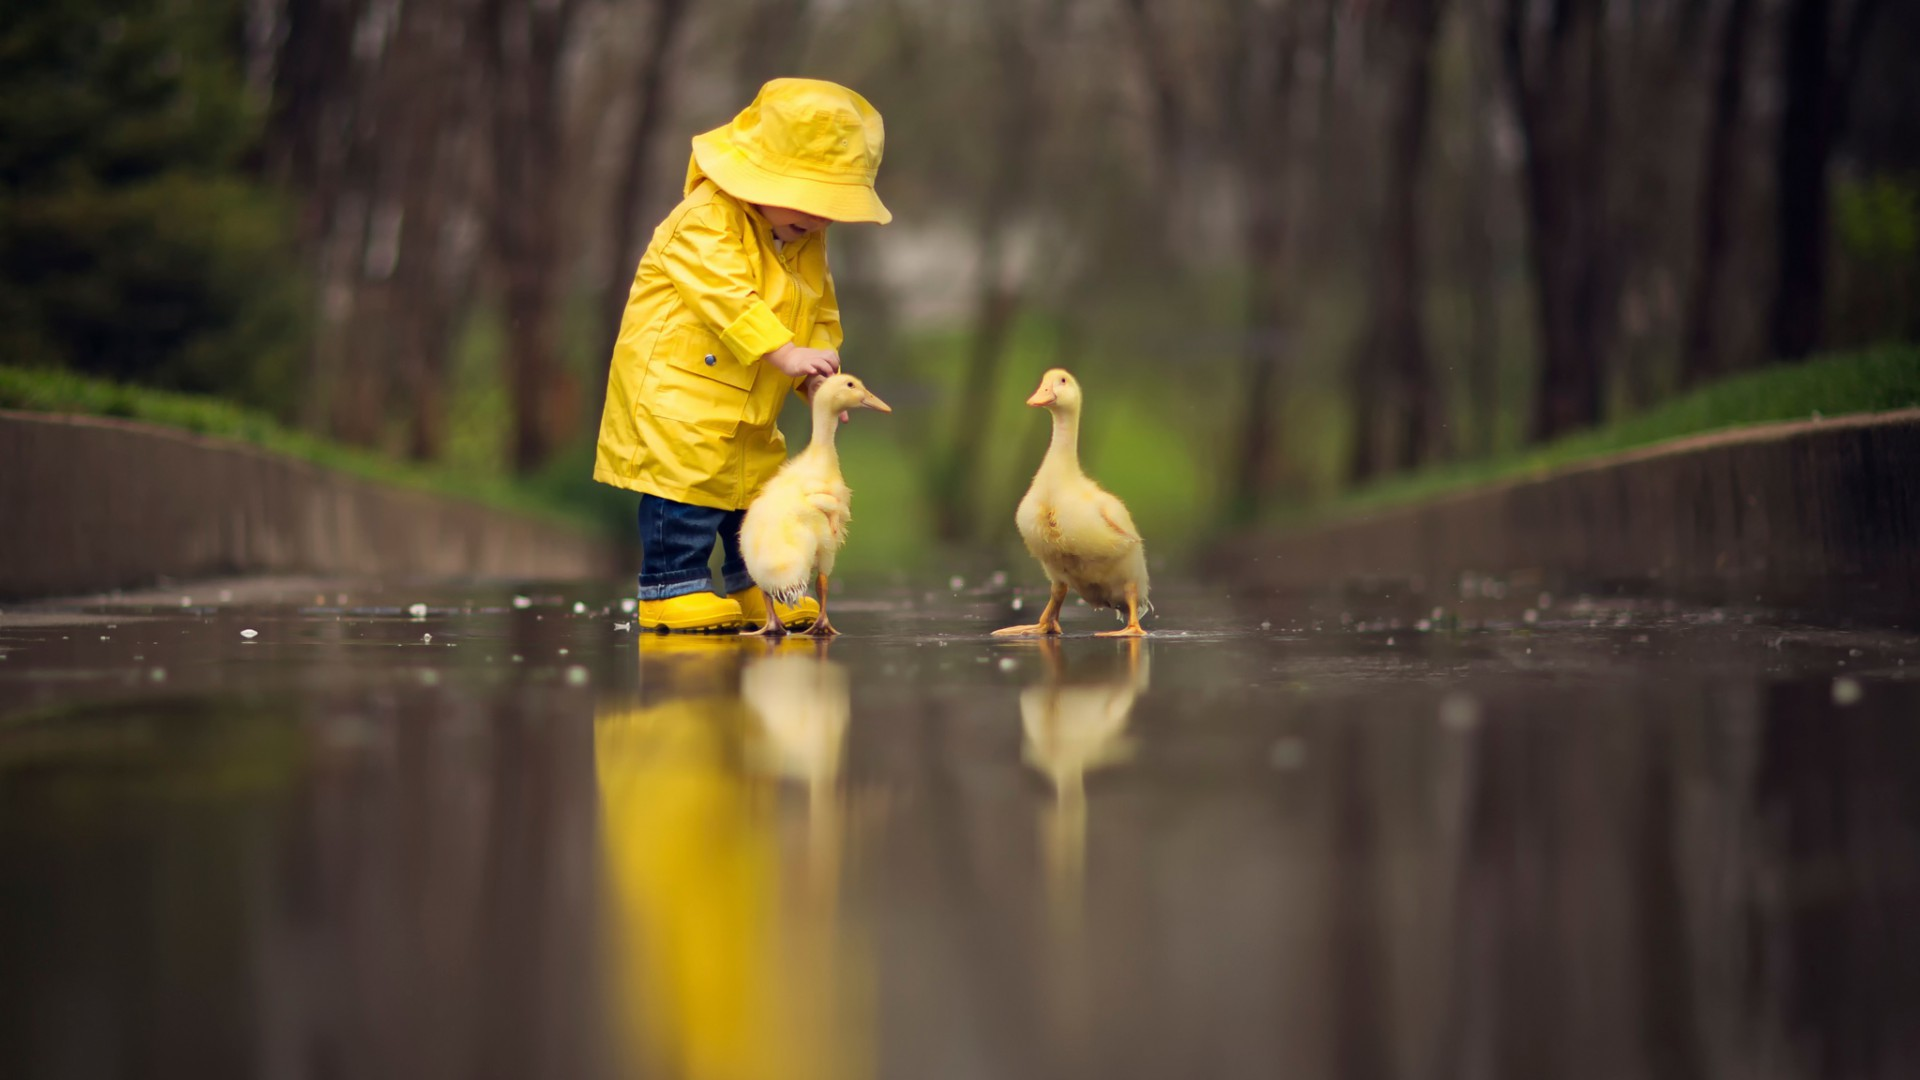 Res: 1920x1080, Small child with ducks [] ...